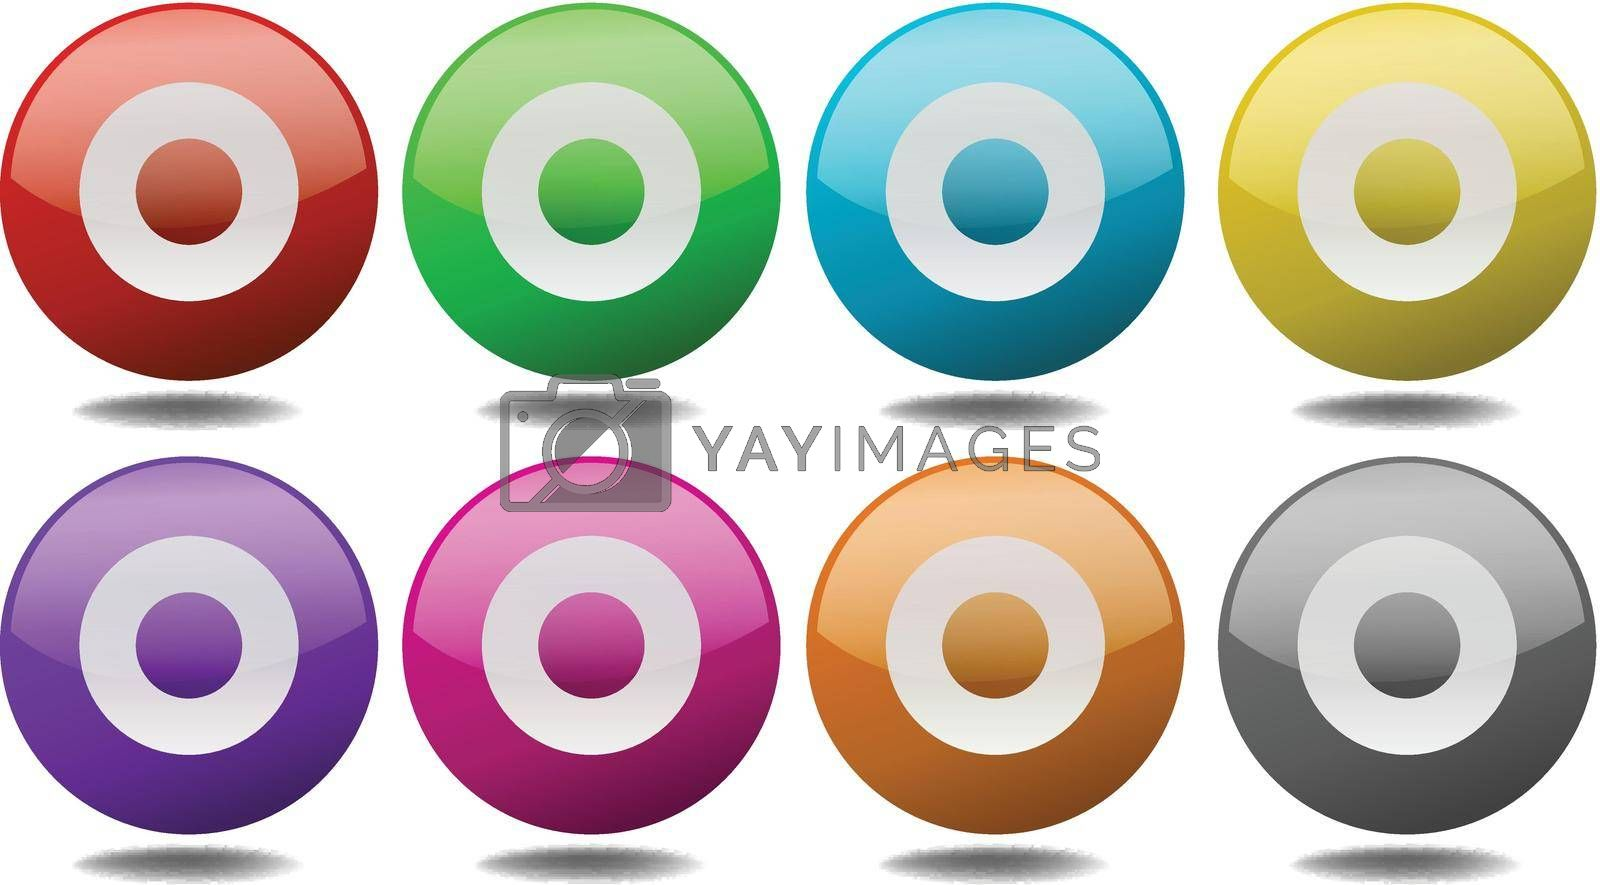 Royalty free image of Targets by iimages